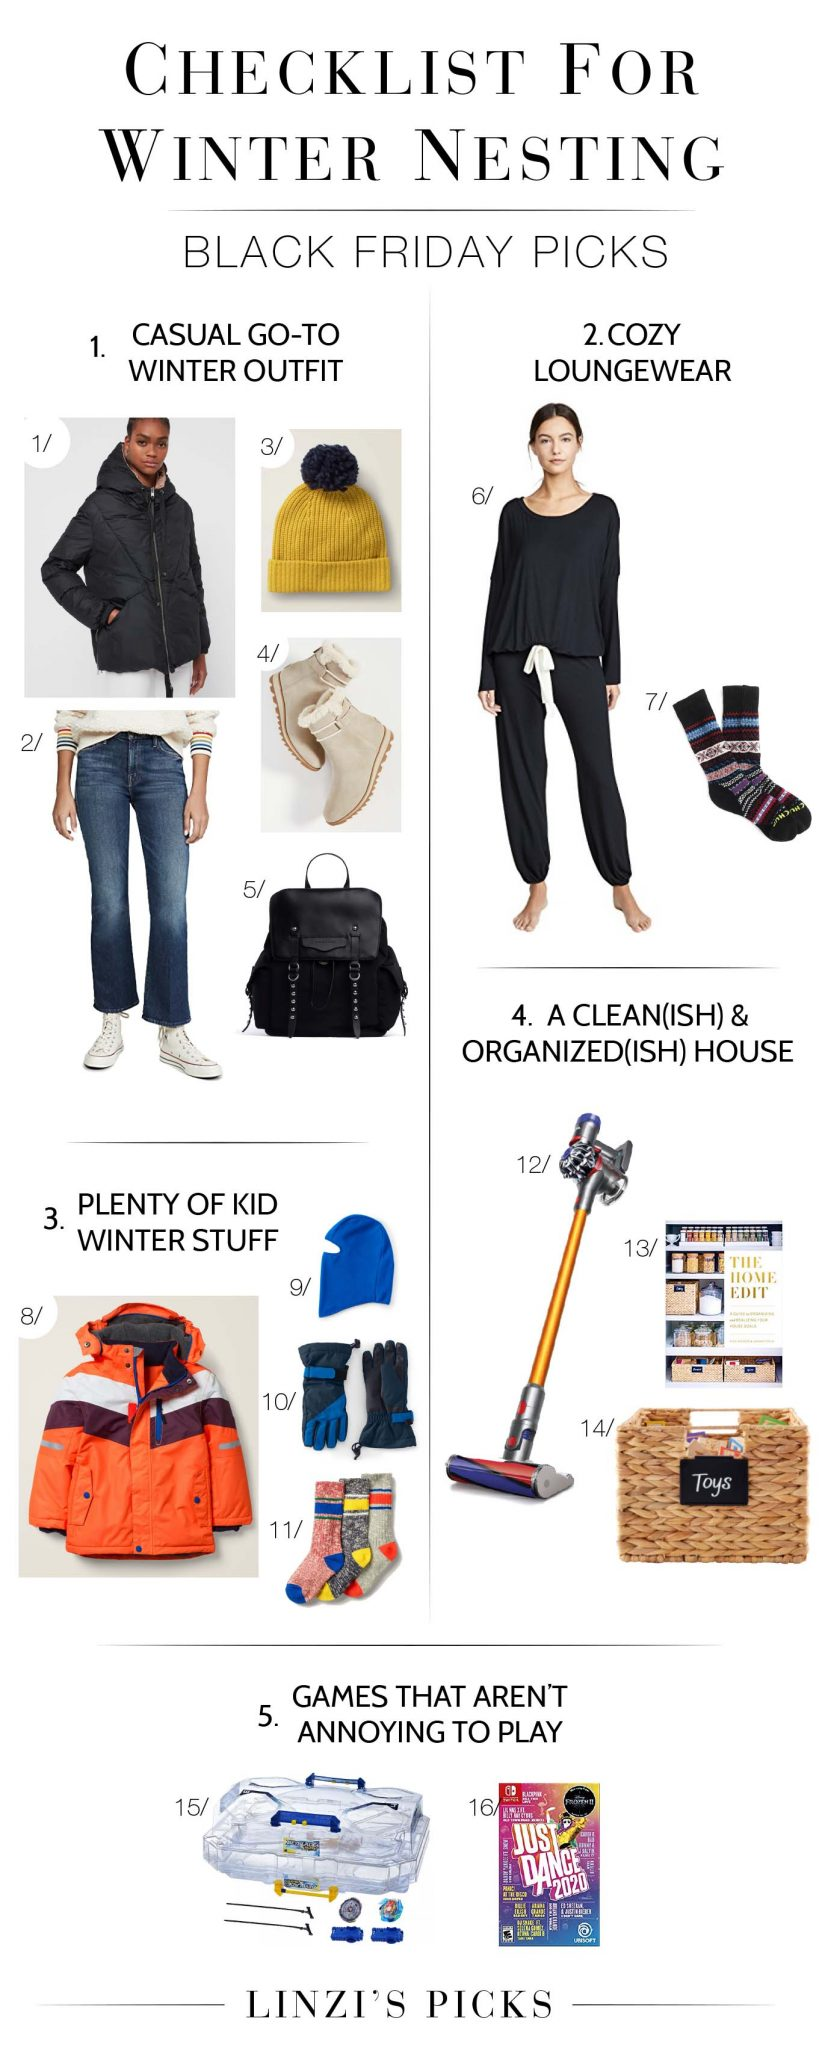 Black Friday is on! A ton of winter nesting items (casual outfits, cleaning inso) are on sale. Want good formula for winter-prep? Shop this checklist.